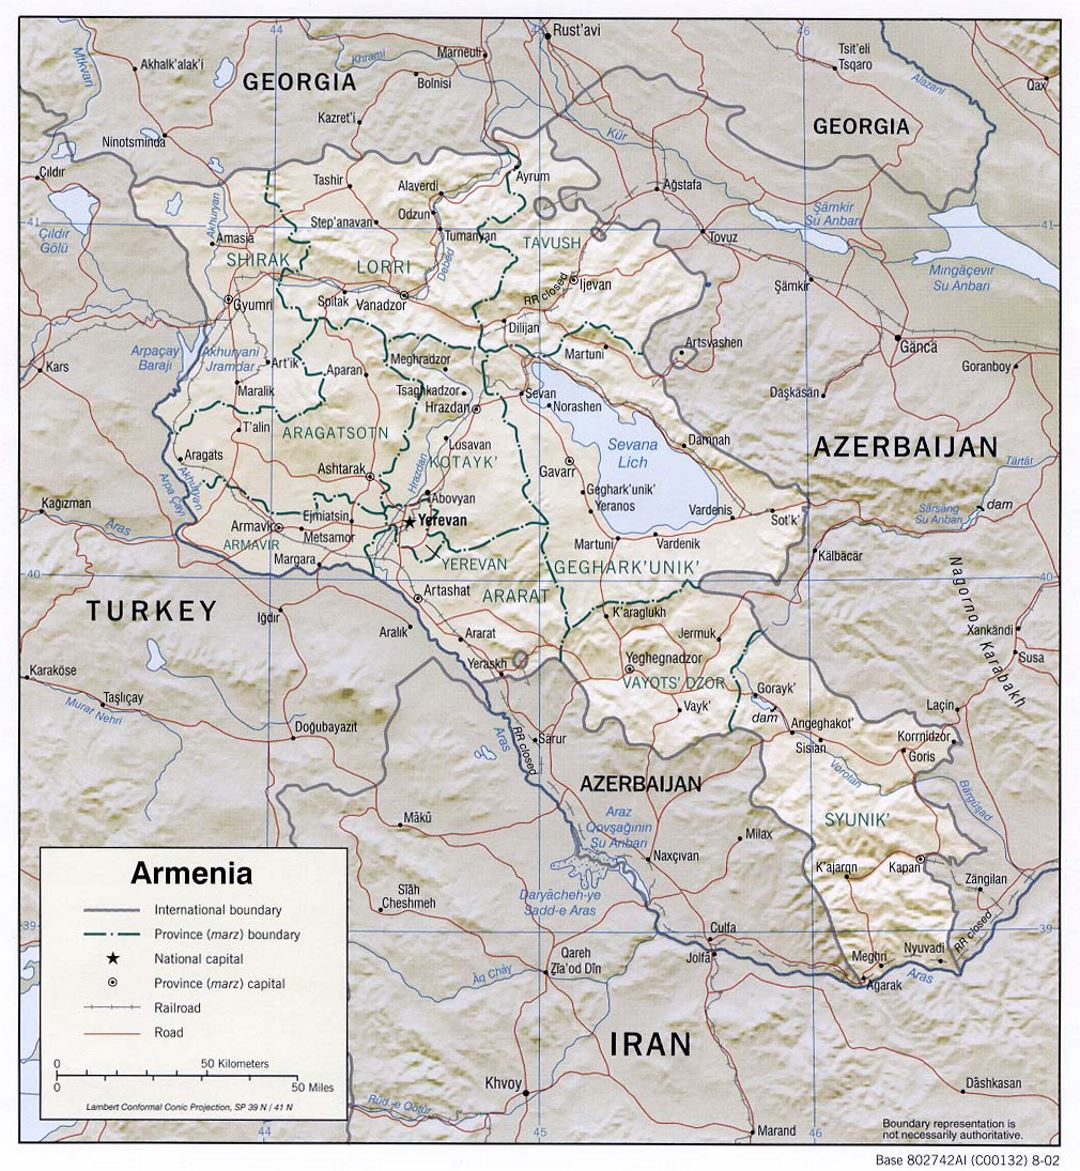 Detailed political and administrative map of Armenia with relief, roads and cities - 2002